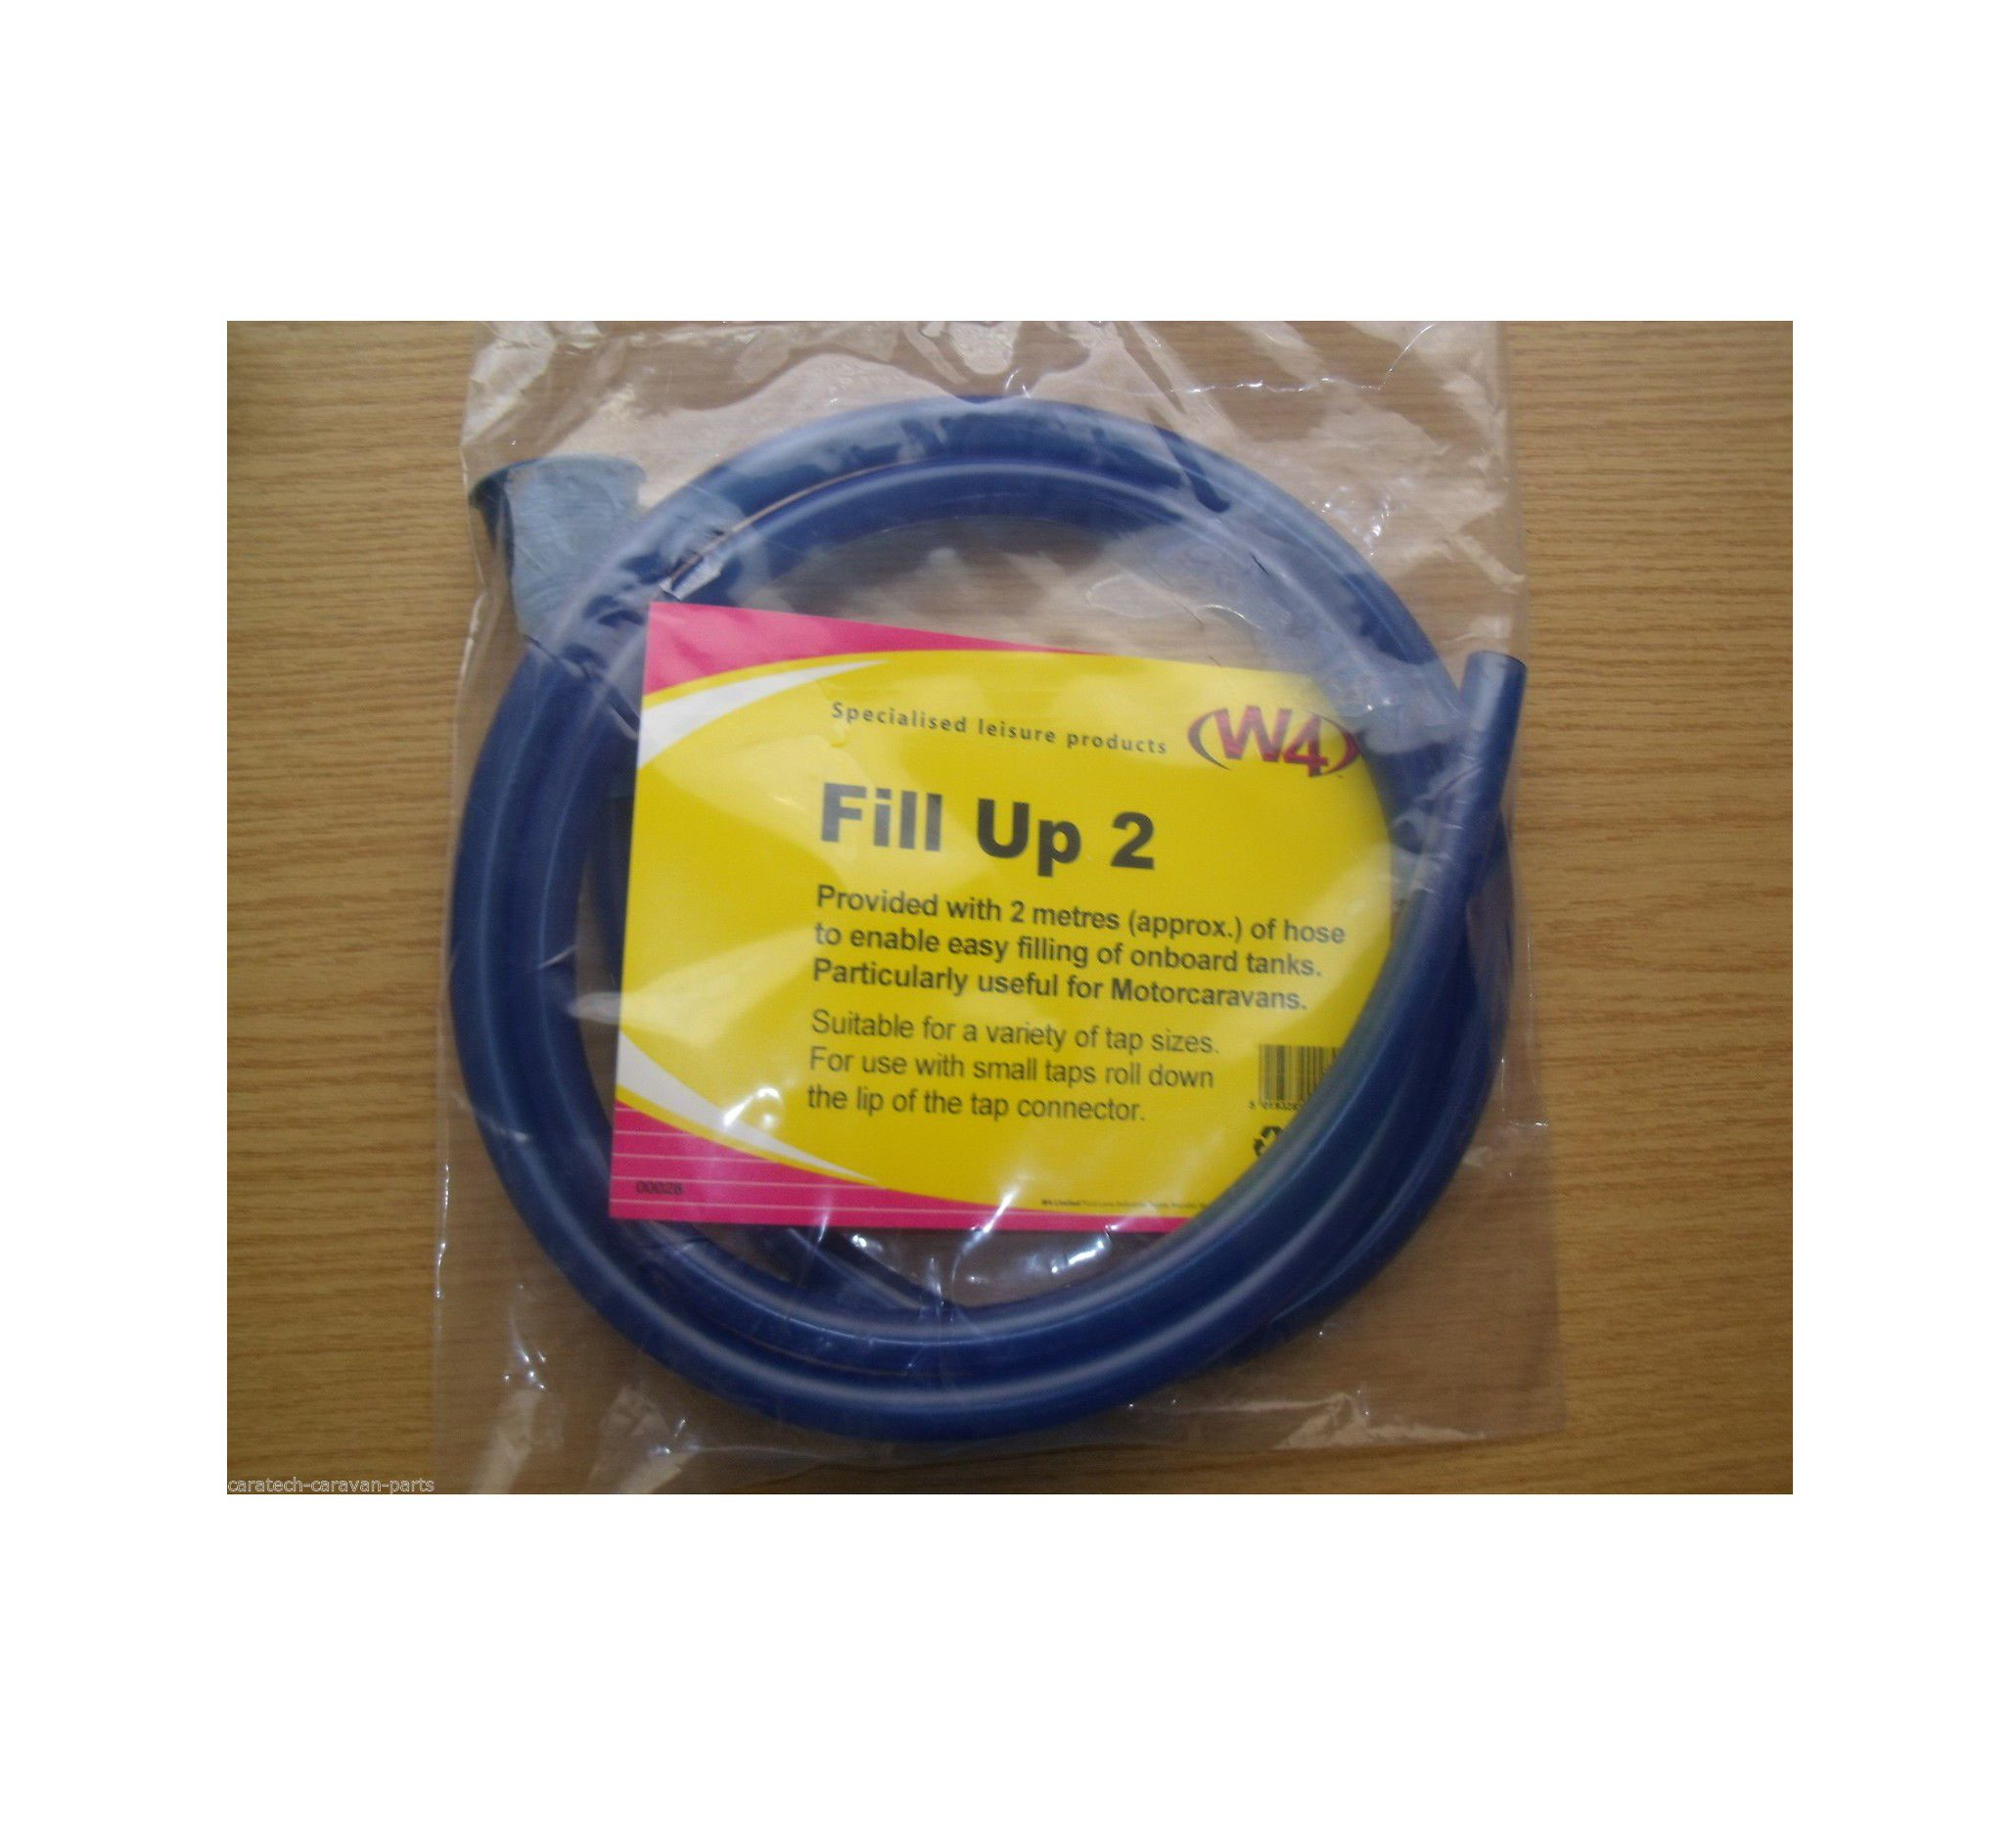 W4 Fill up 2, 2m hose